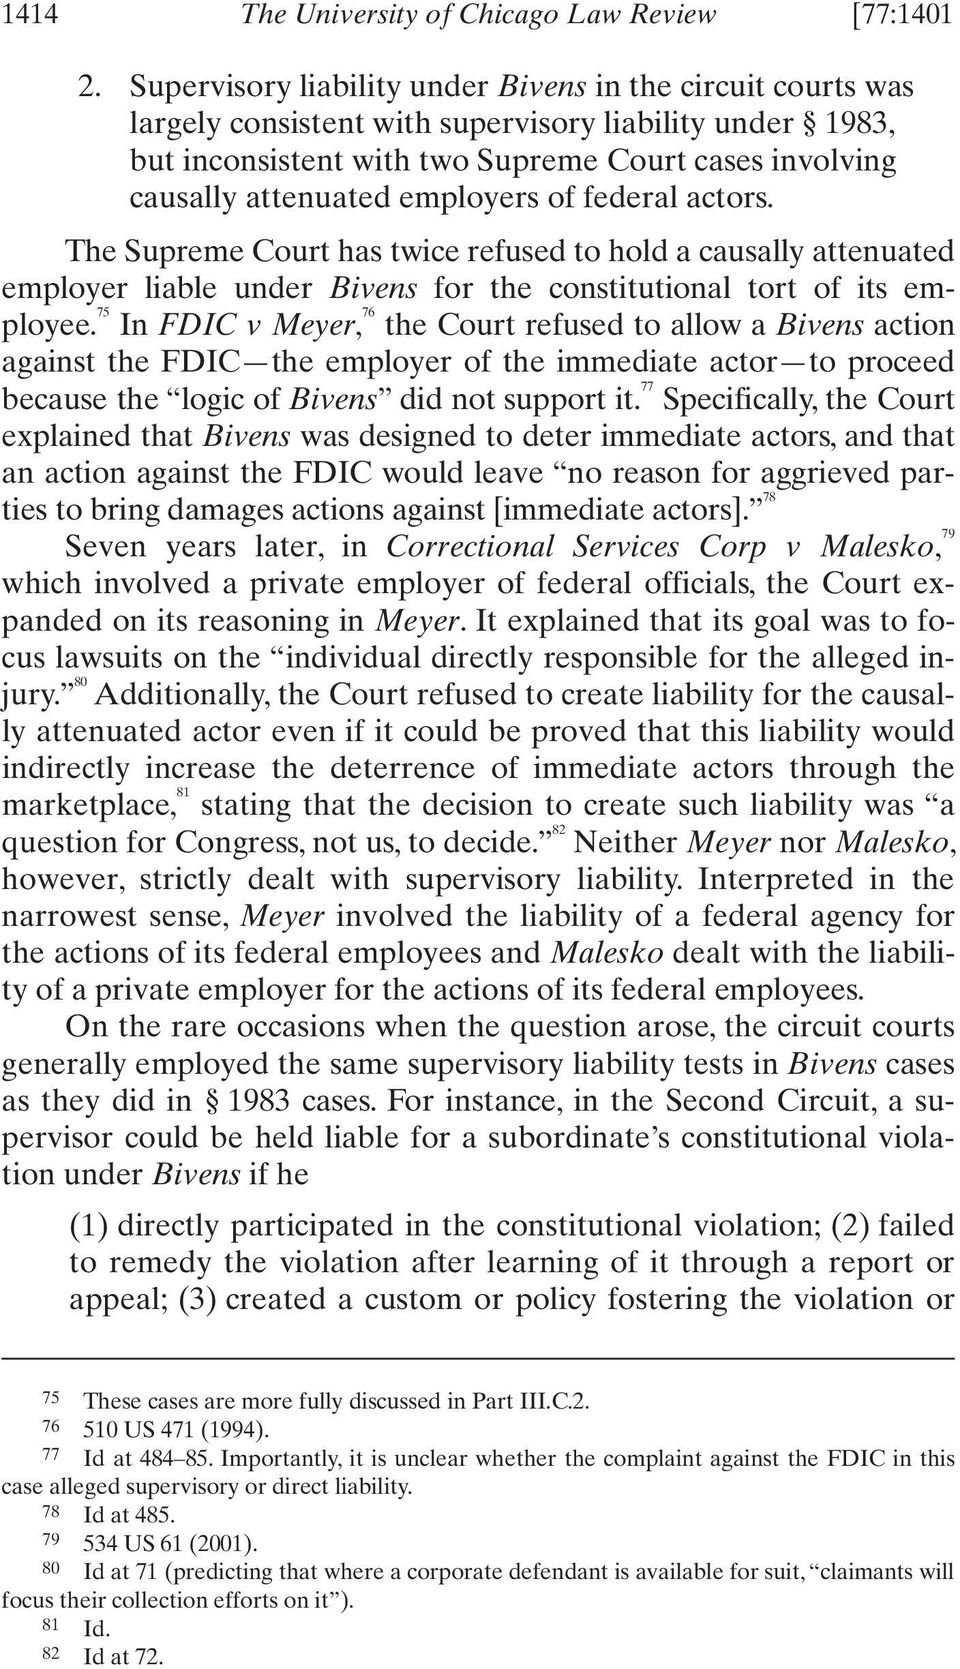 employers of federal actors. The Supreme Court has twice refused to hold a causally attenuated employer liable under Bivens for the constitutional tort of its employee.